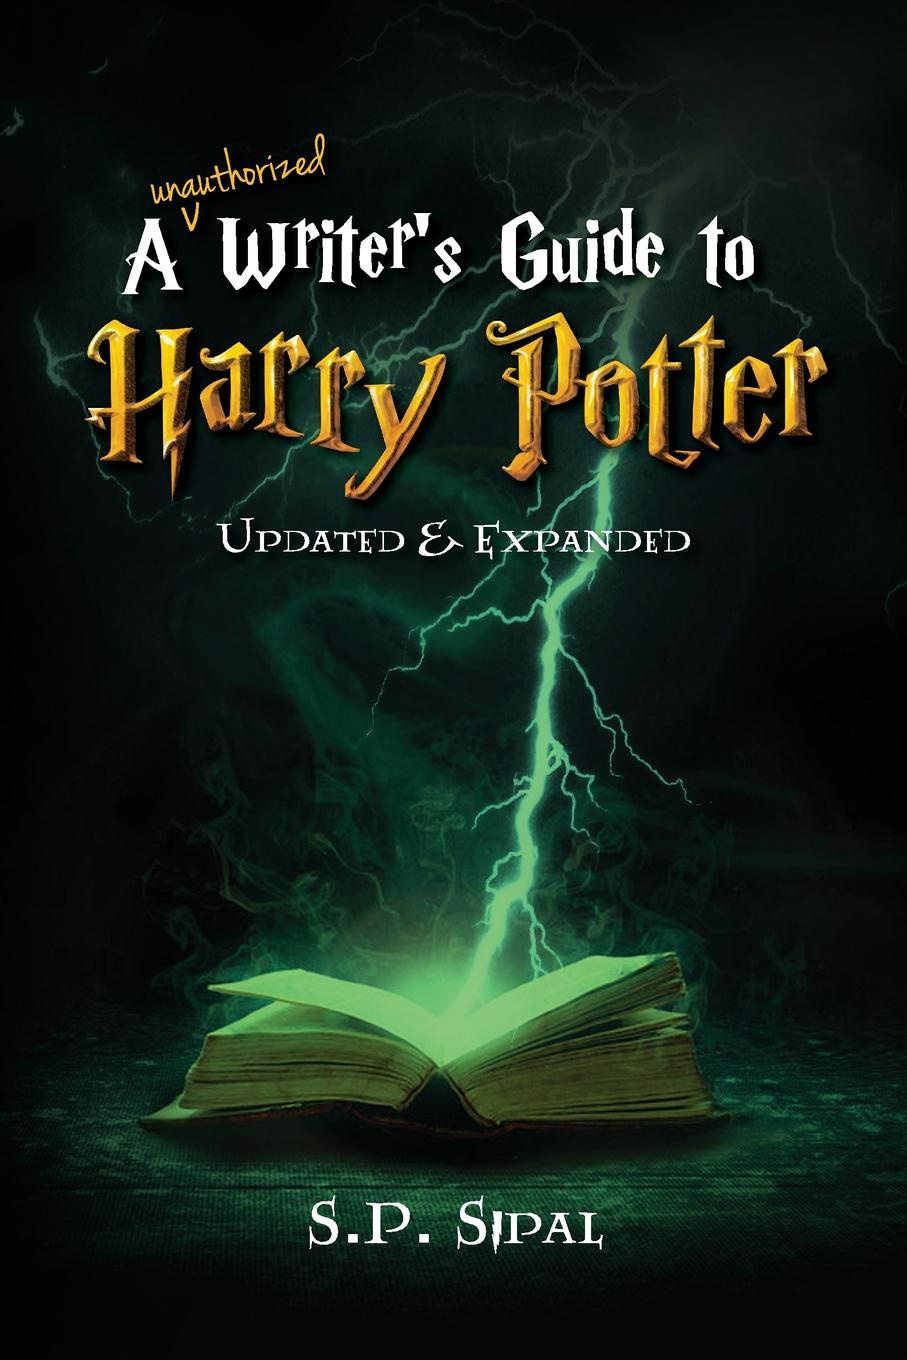 S.P. Sipal Writer.s Guide to Harry Potter. Improve Your Writing by Studying the Best Selling Series